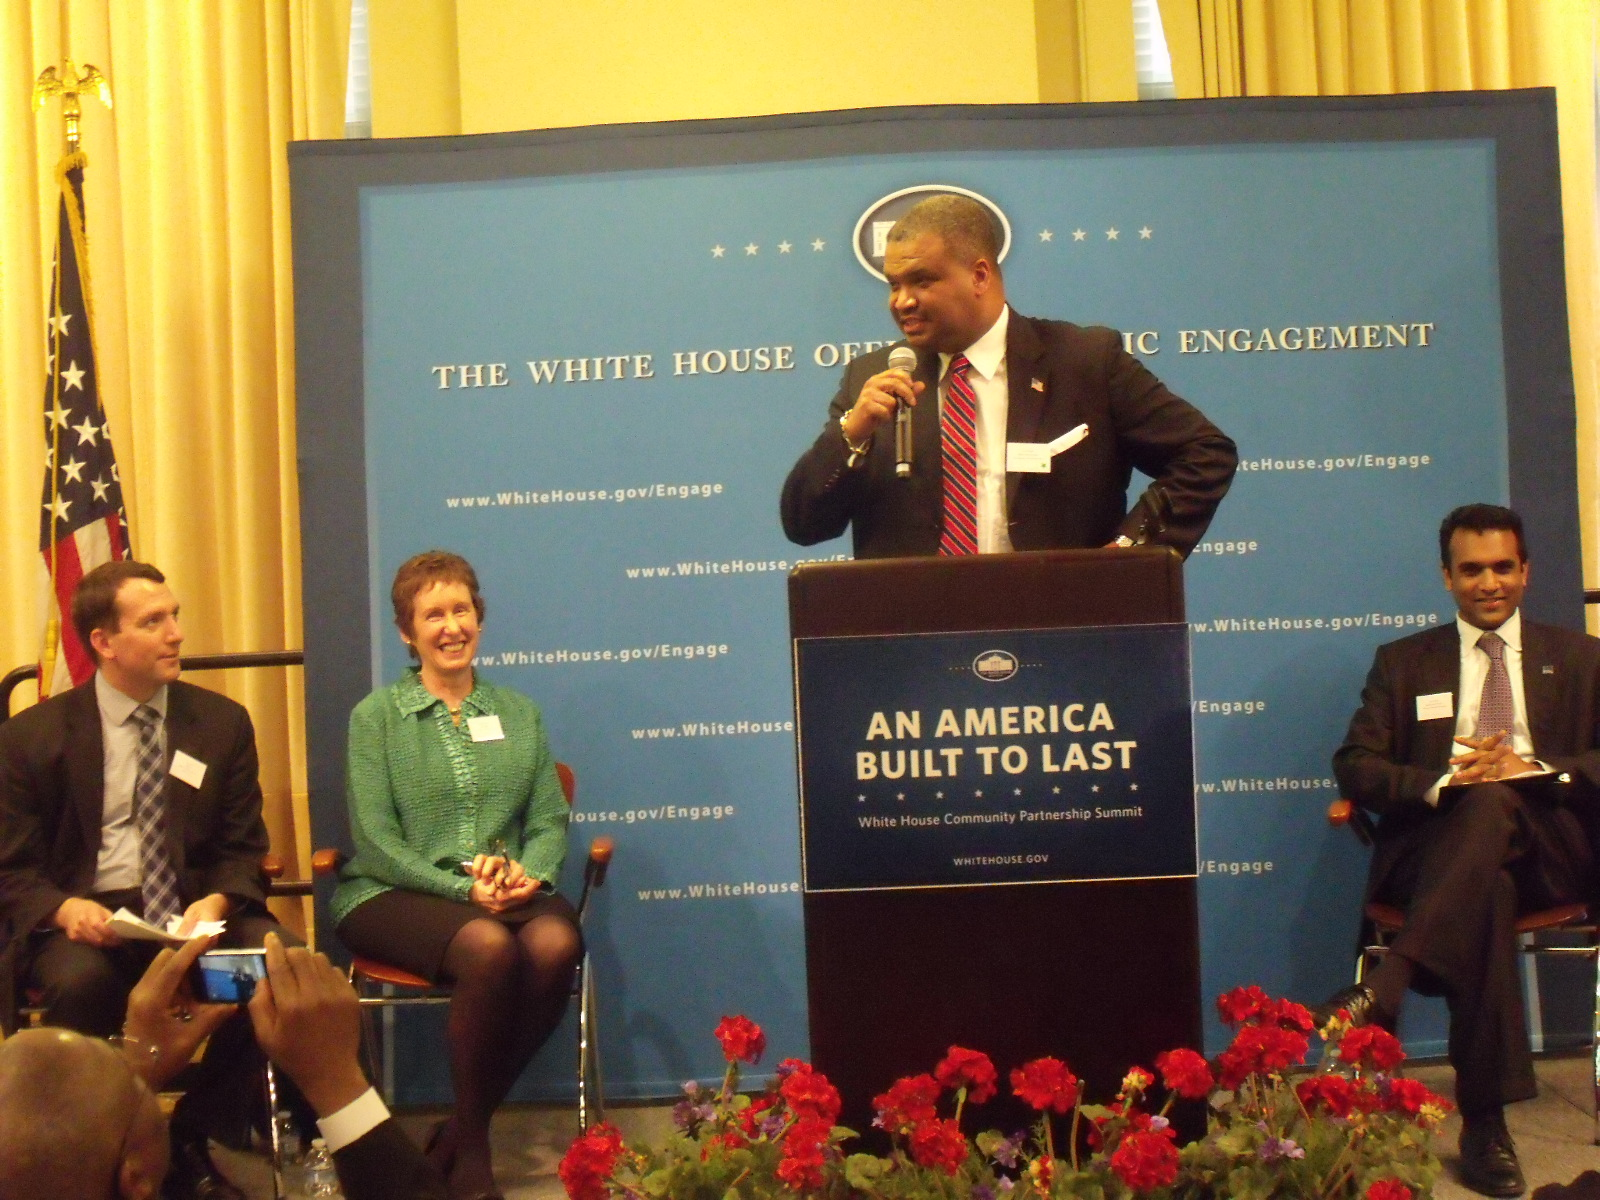 Ed Jennings, Jr. at White House Community Partnership Summit in Atlanta